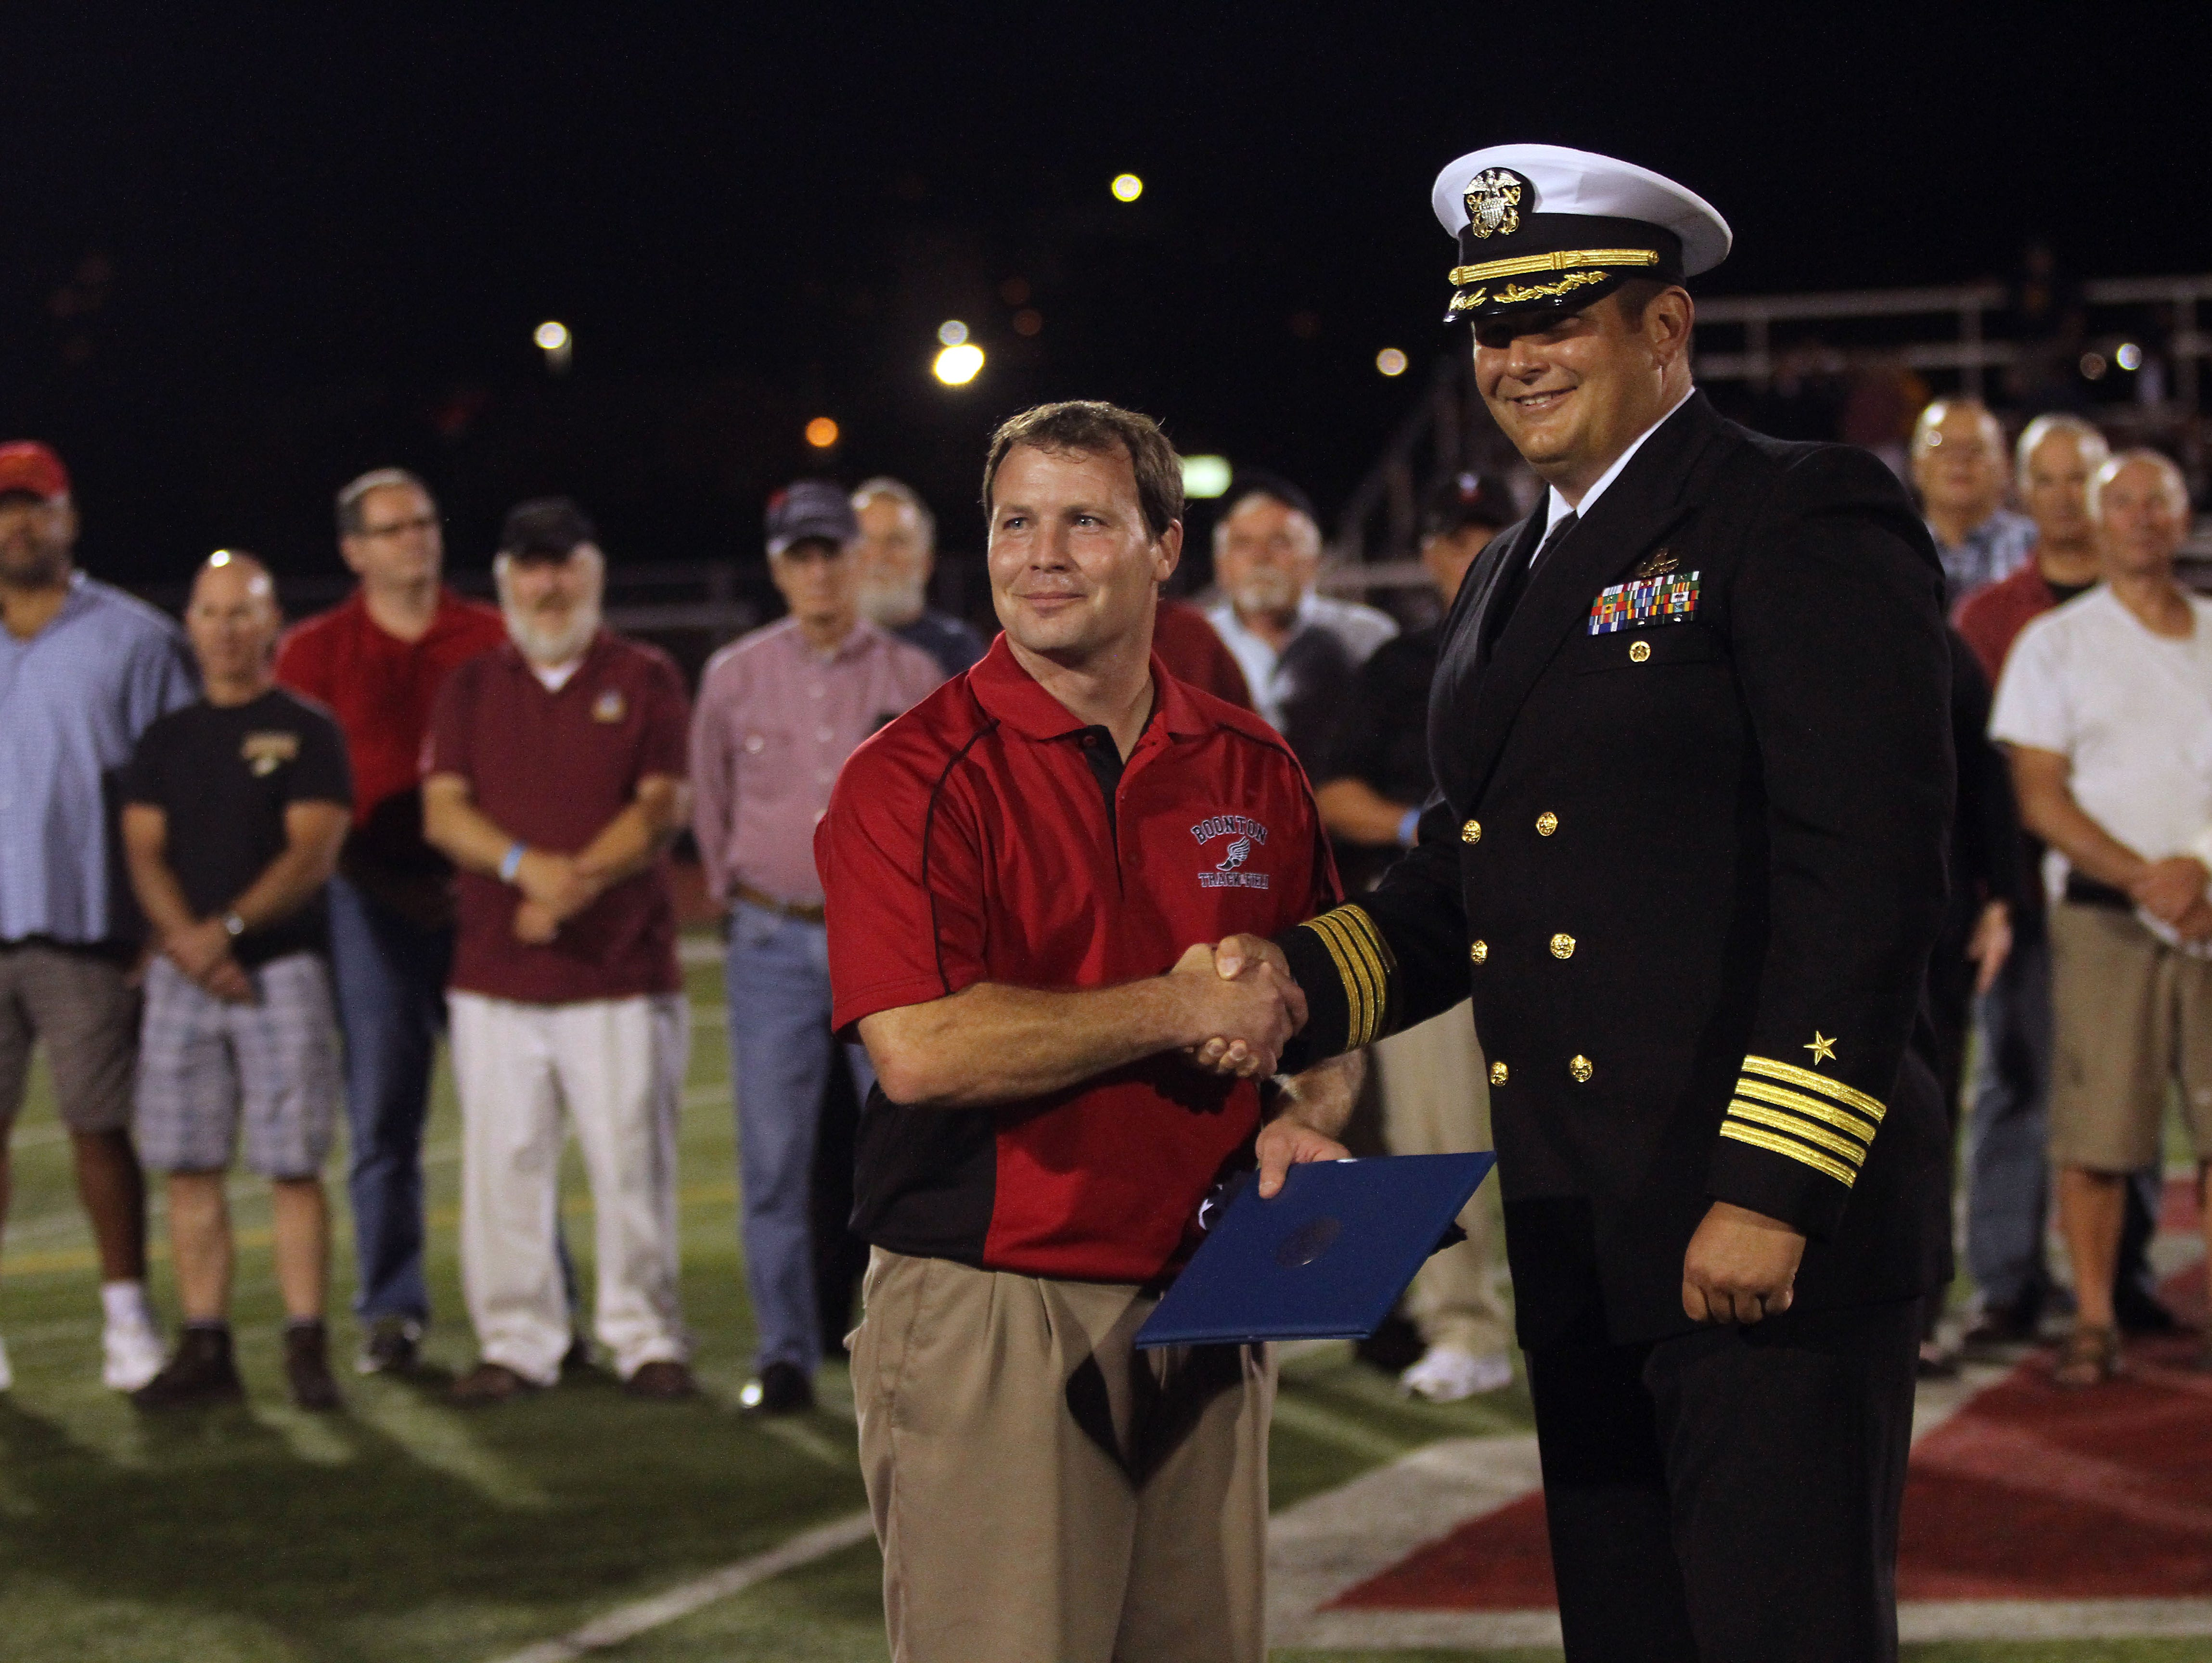 Boonton Athletic Director Dave Hughen, l, is presented an American flag flown over the Pentagon by Boonton grad, Navy Capt. Dean Muriano as Boonton High School honored its graduate military veterans during halftime of the Boonton High School football game Friday night. The vets, some of whom are still residents, others coming back from out of town, also enjoyed a tailgate party prior to the game and ceremony.